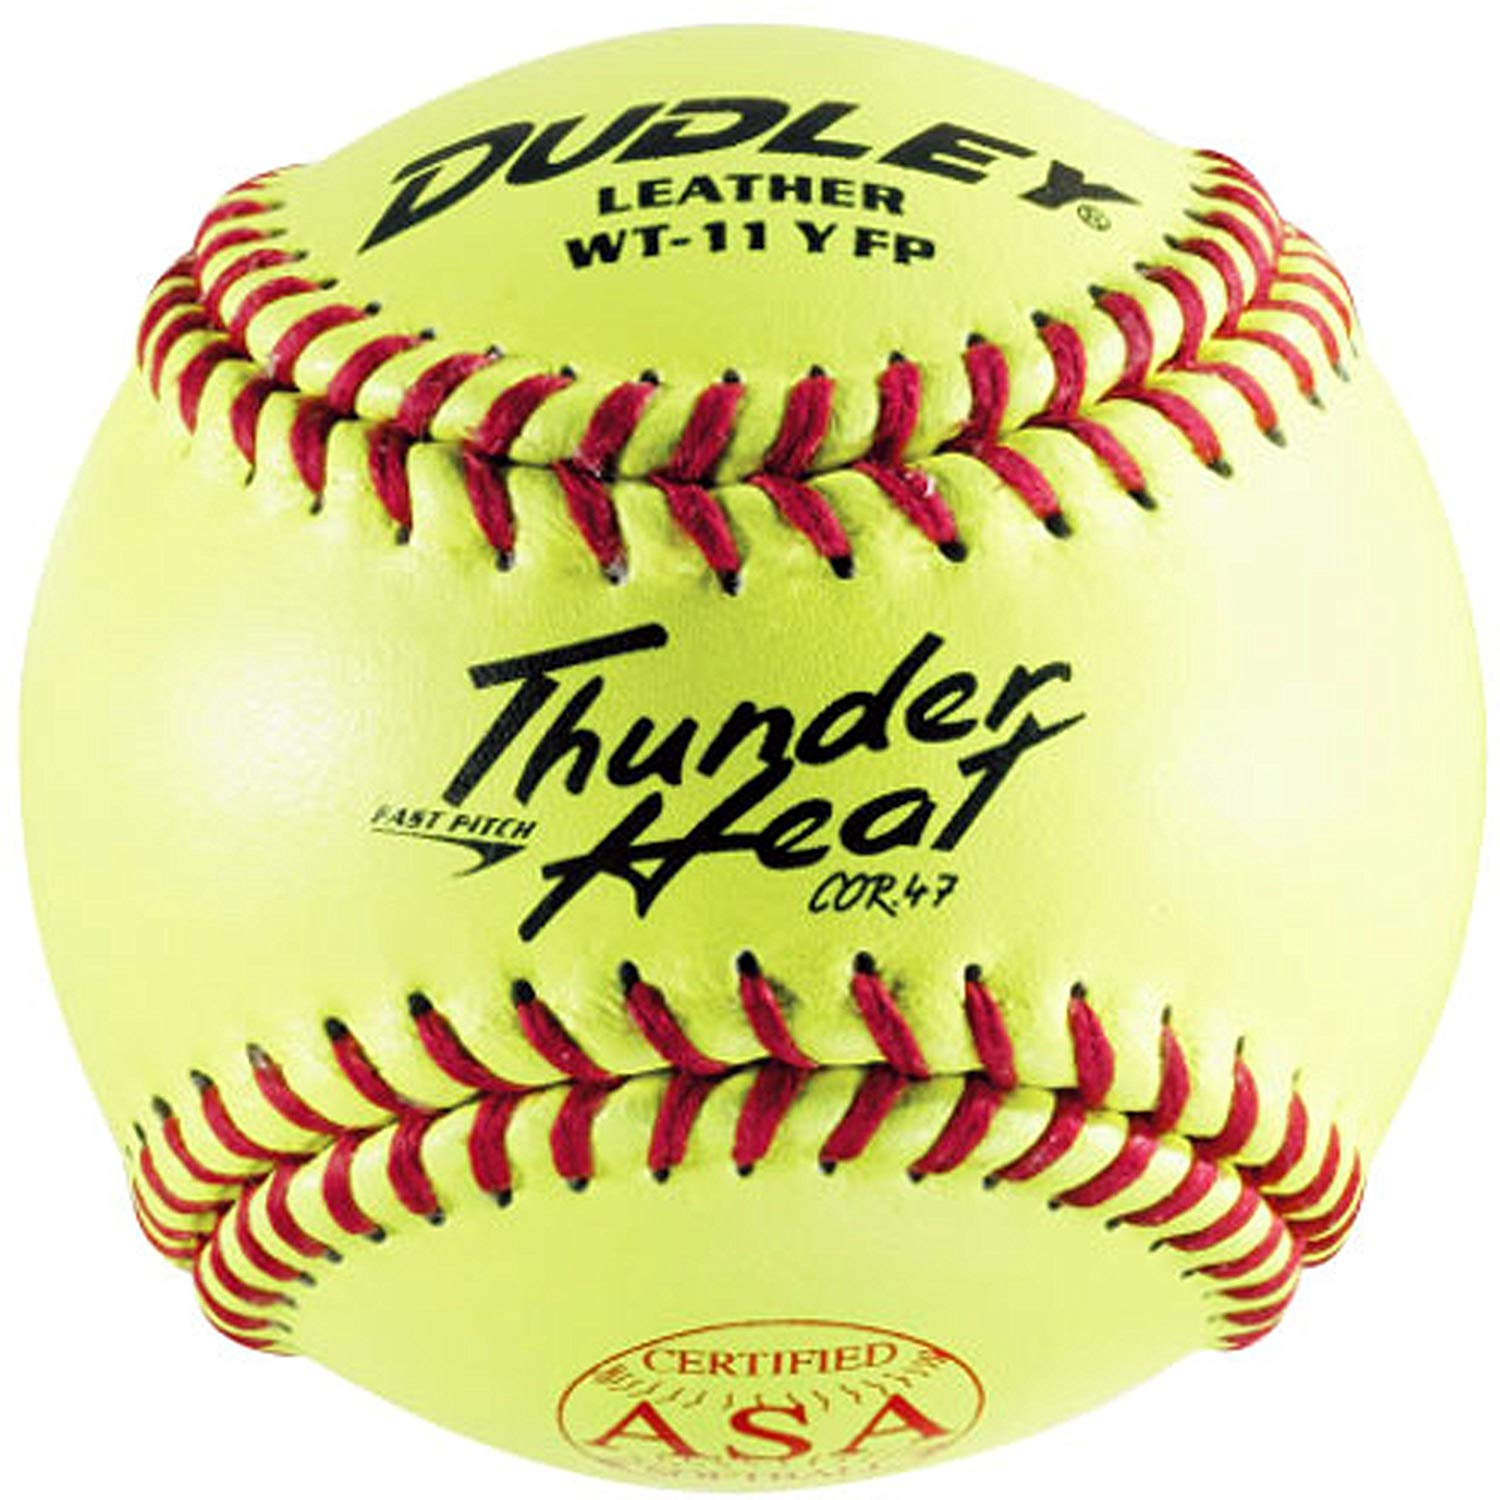 dudley-thunder-11-inch-asa-softballs-1-doz WT-11YFP  026307906487 Thunder Heat Series. ASA Fast Pitch. Top grade Yellow leather cover